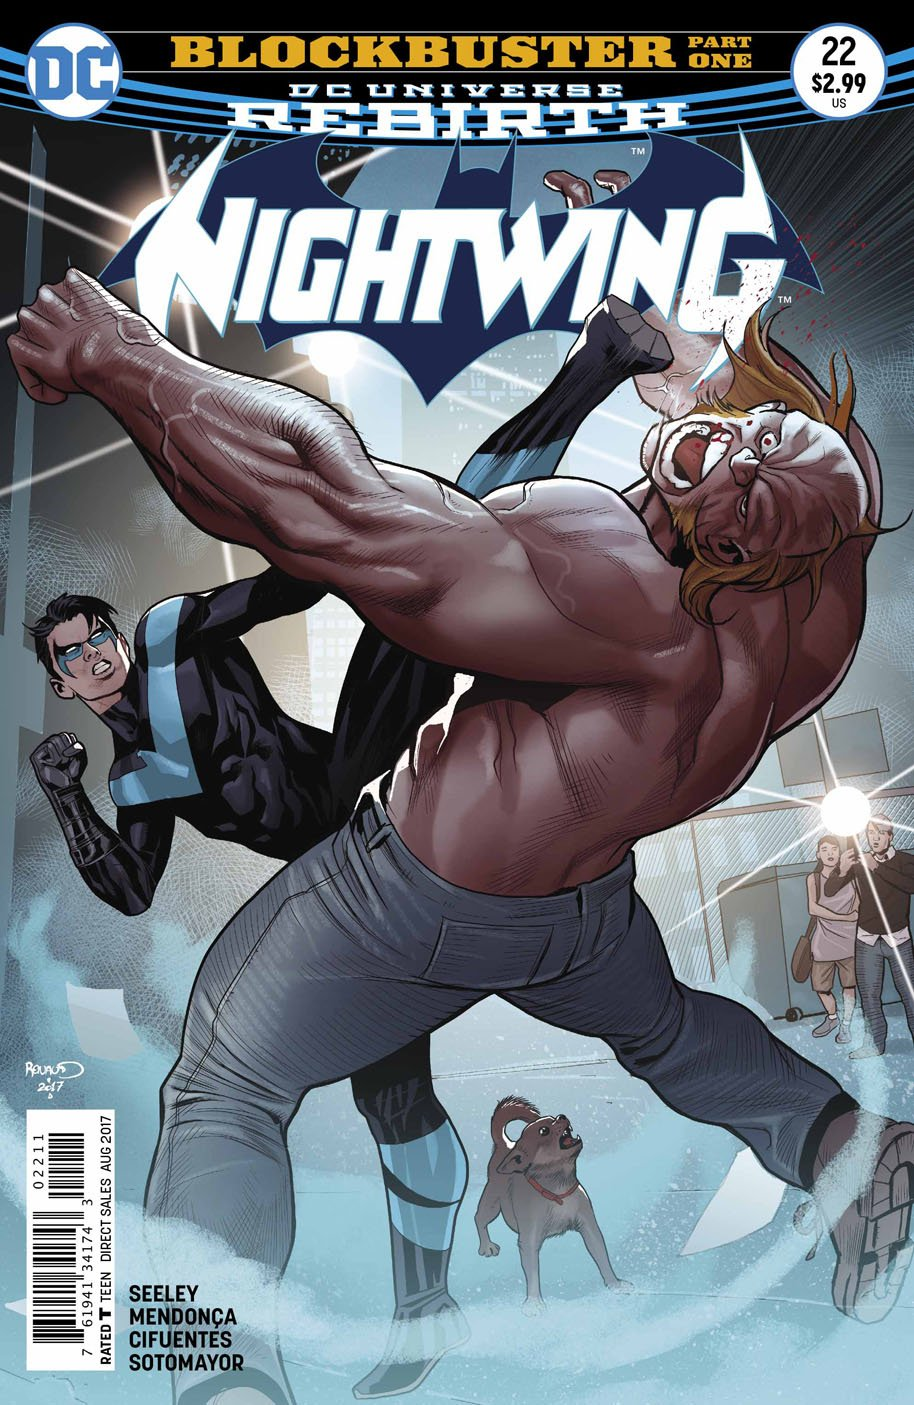 Nightwing 22 cover